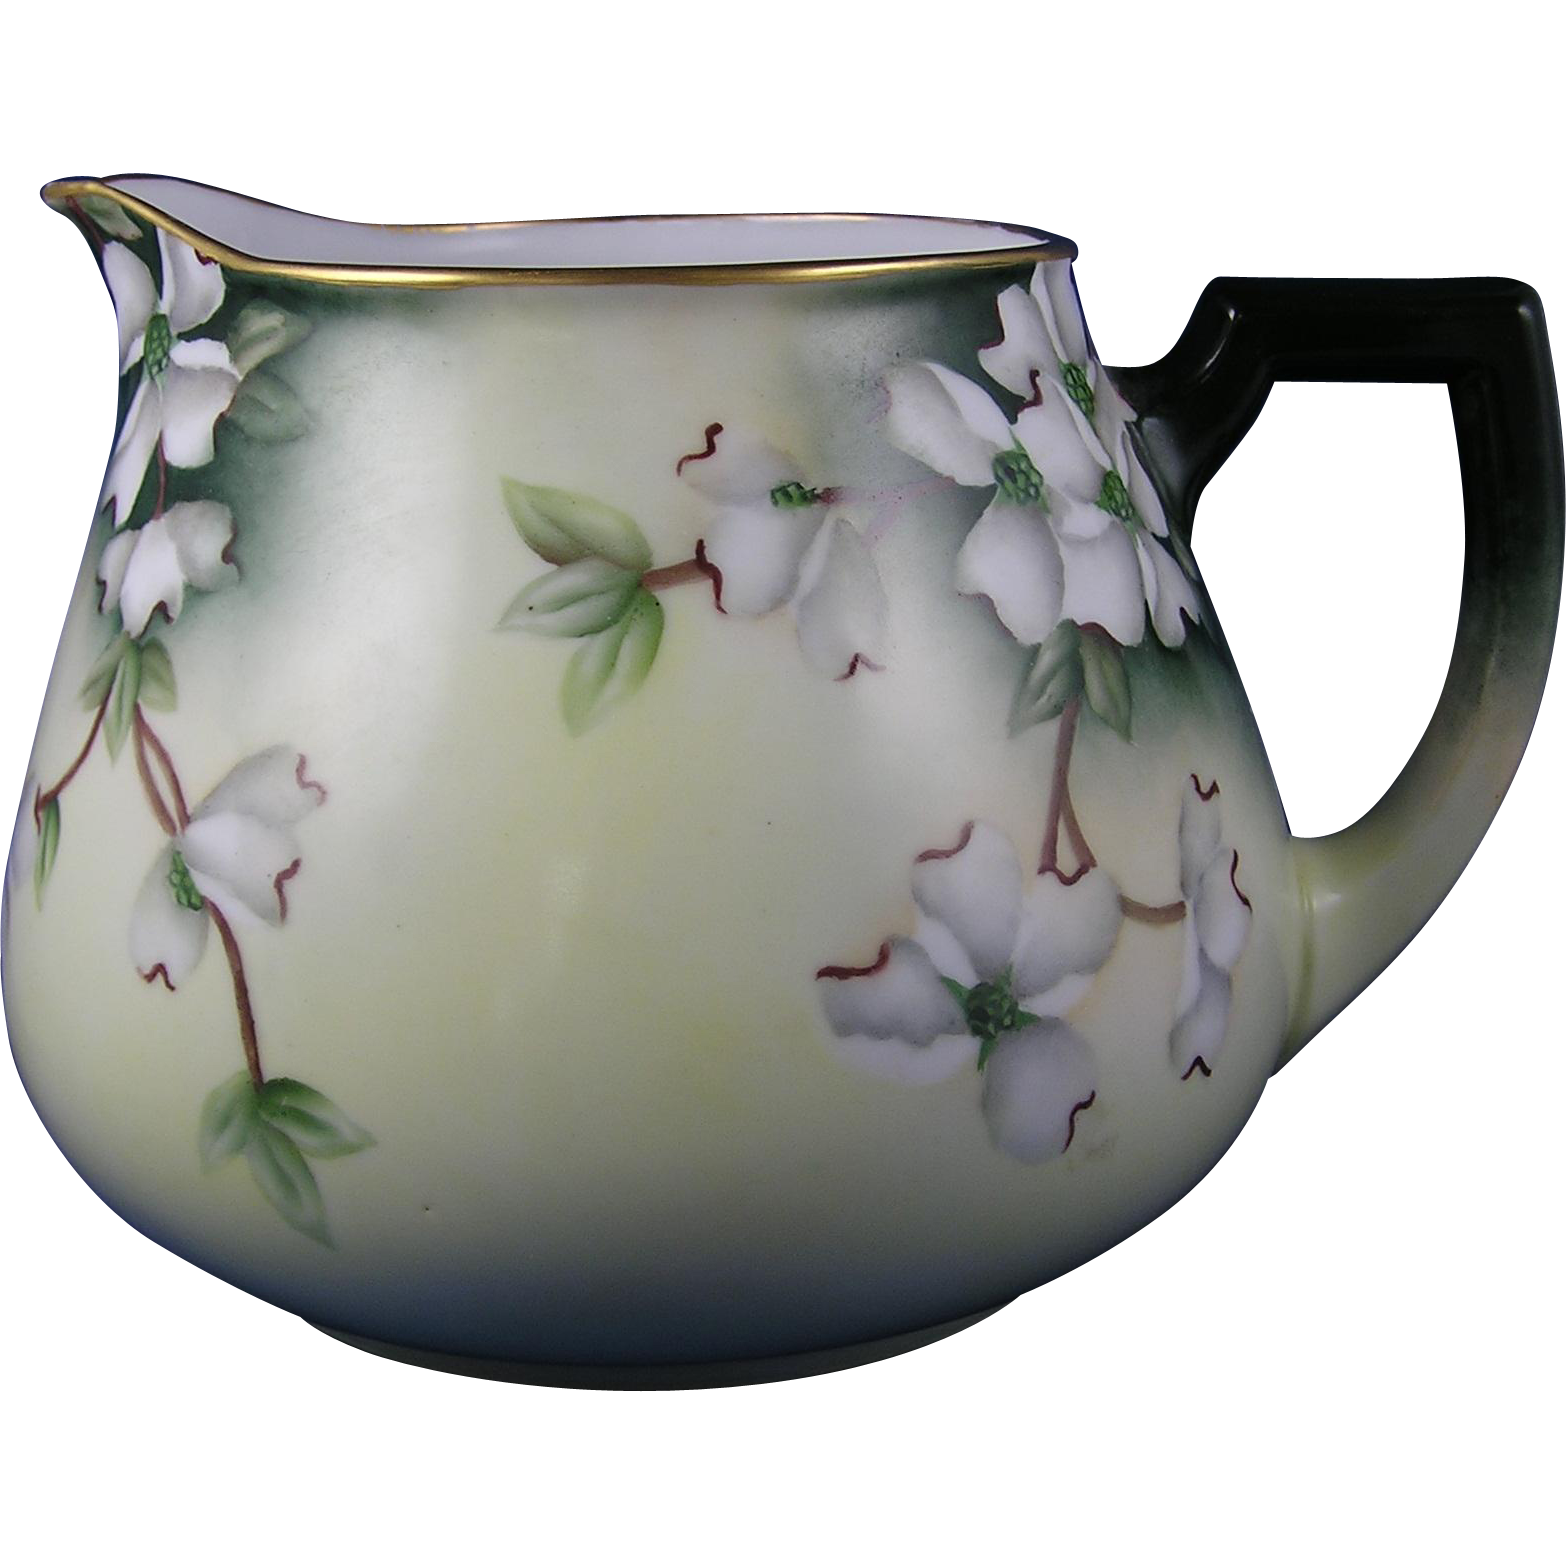 Zeh, Scherzer & Co. (ZS&Co.) Austria Dogwood Flower Design Cider/Lemonade Pitcher (c.1880-1930)